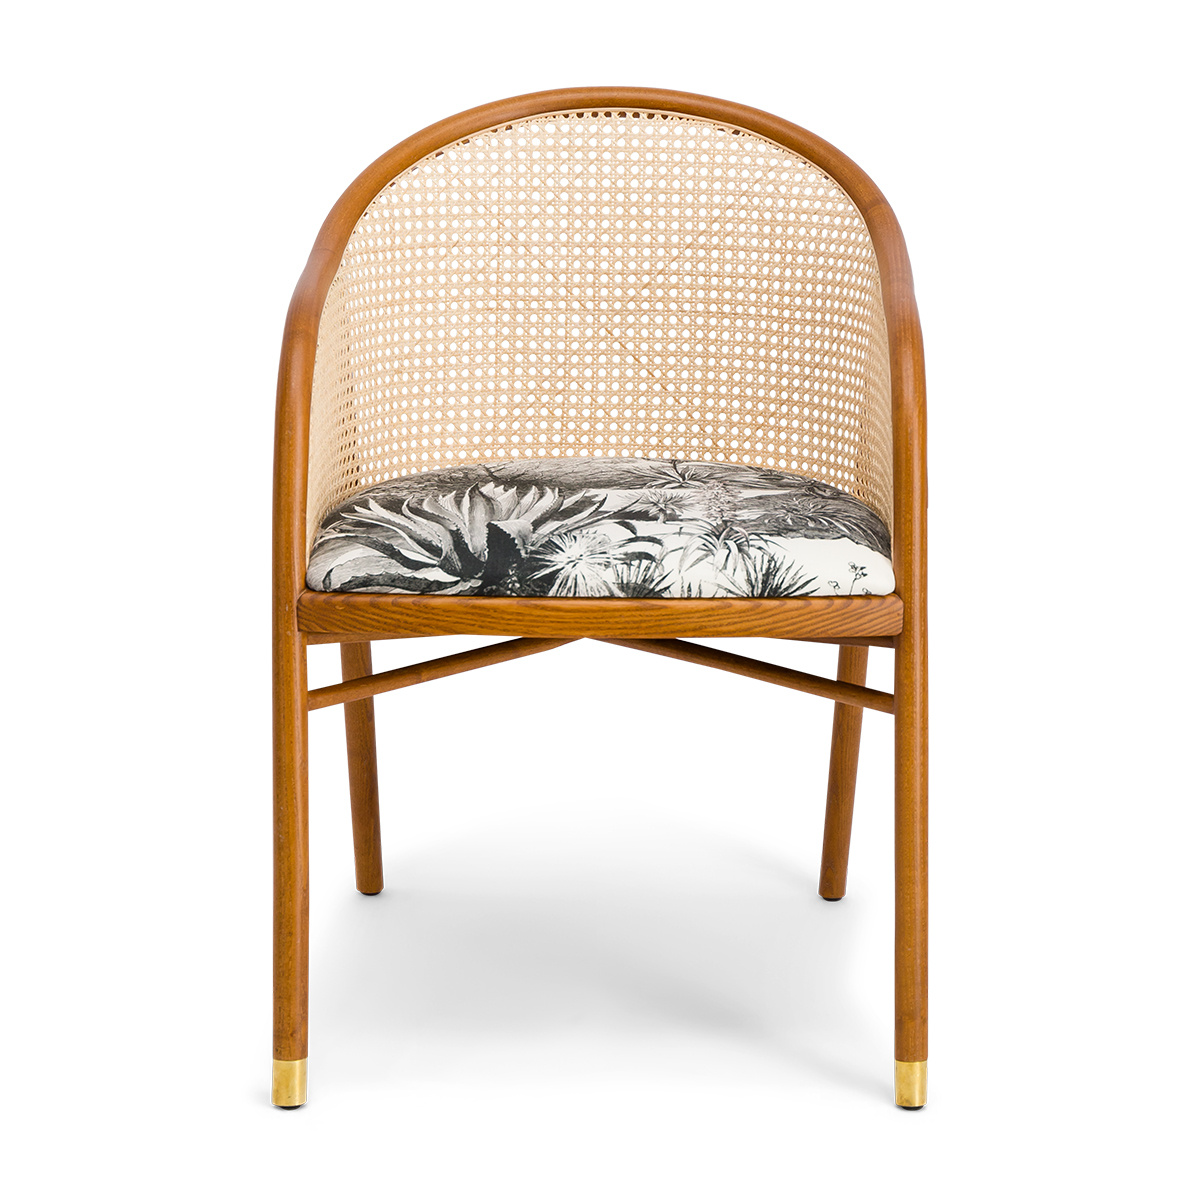 Cavallo Armchair, Pampa Print with Cherrywood Frame